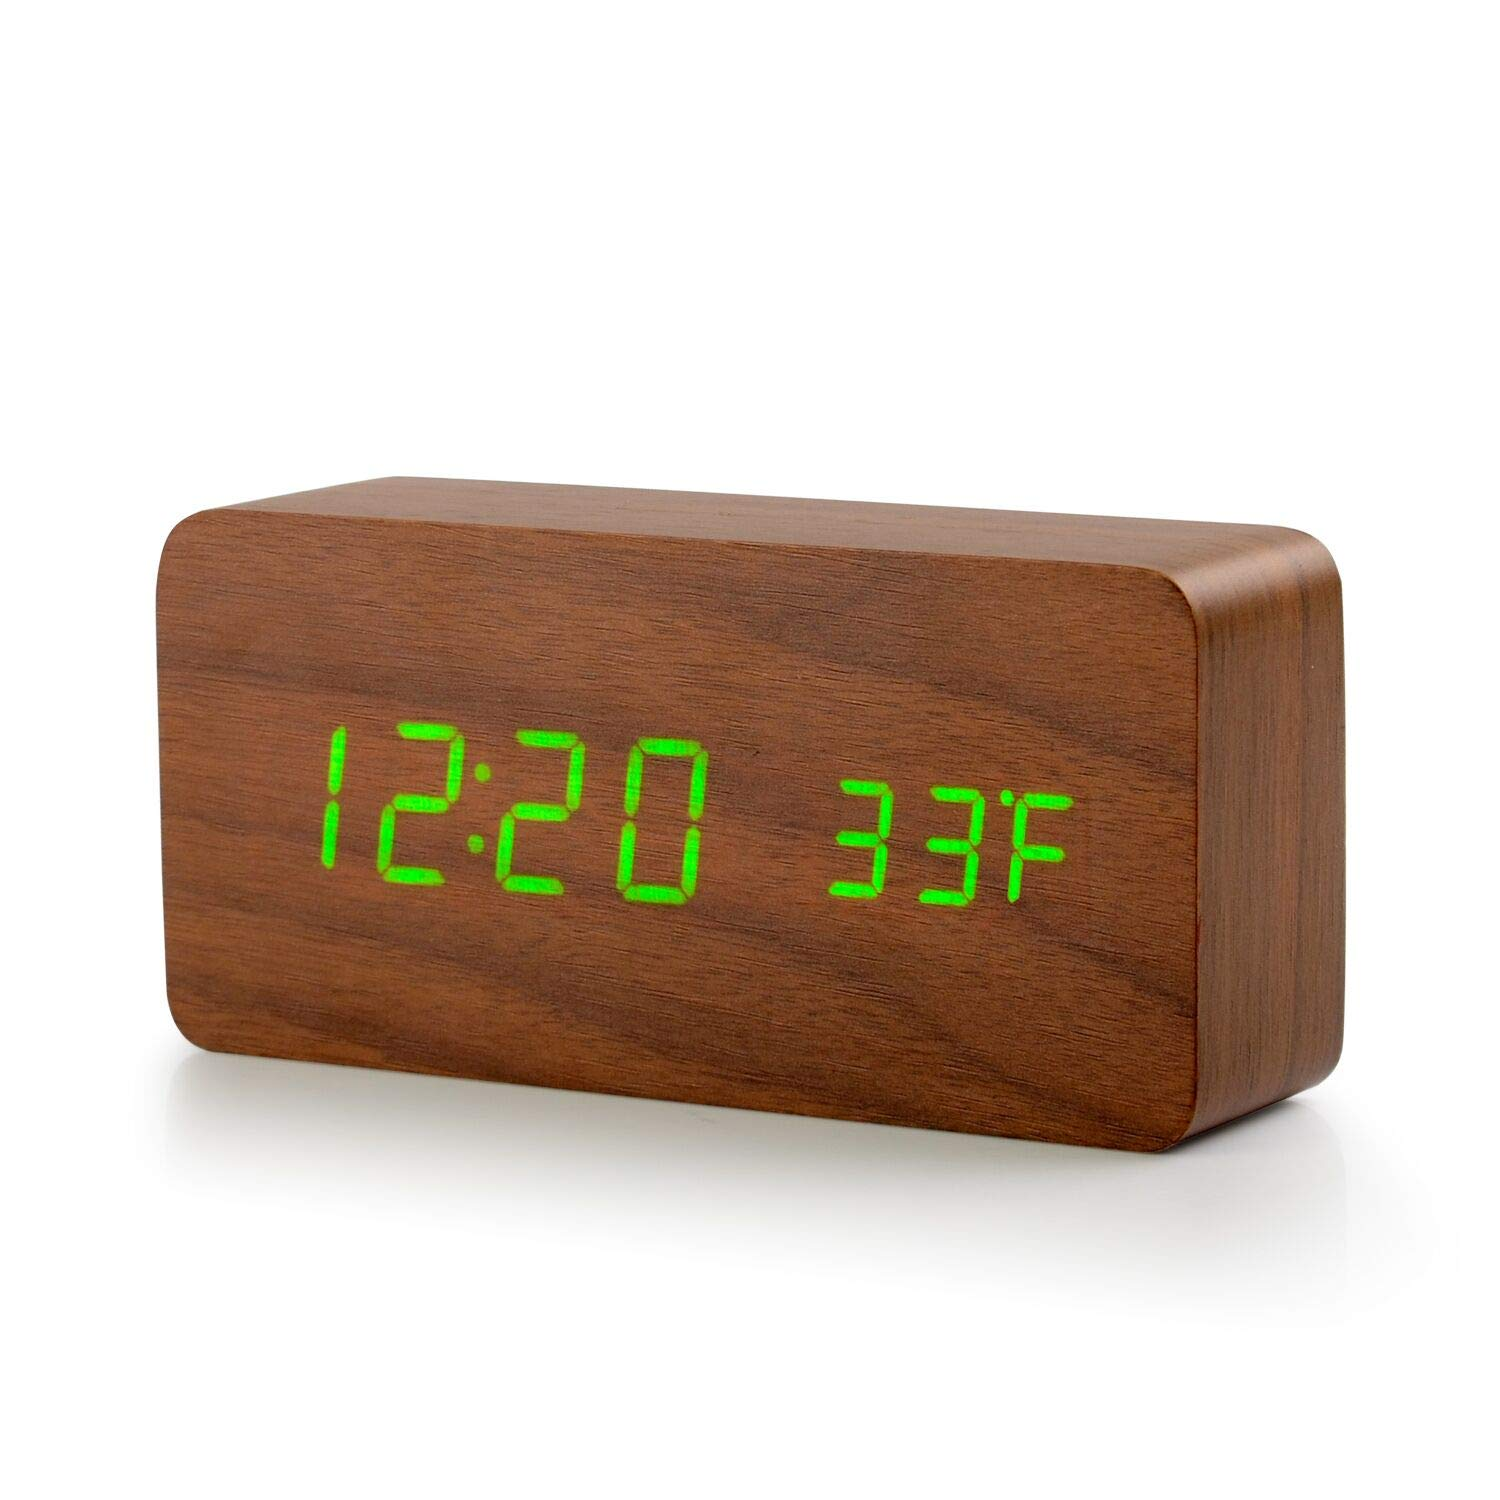 HUAYUN Desk Clock/Wood Alarm Clock,Battery Charging,Leaf Green Font,Bedroom Sleep Function,Stay Away from Radiation and Noise,℉ Display